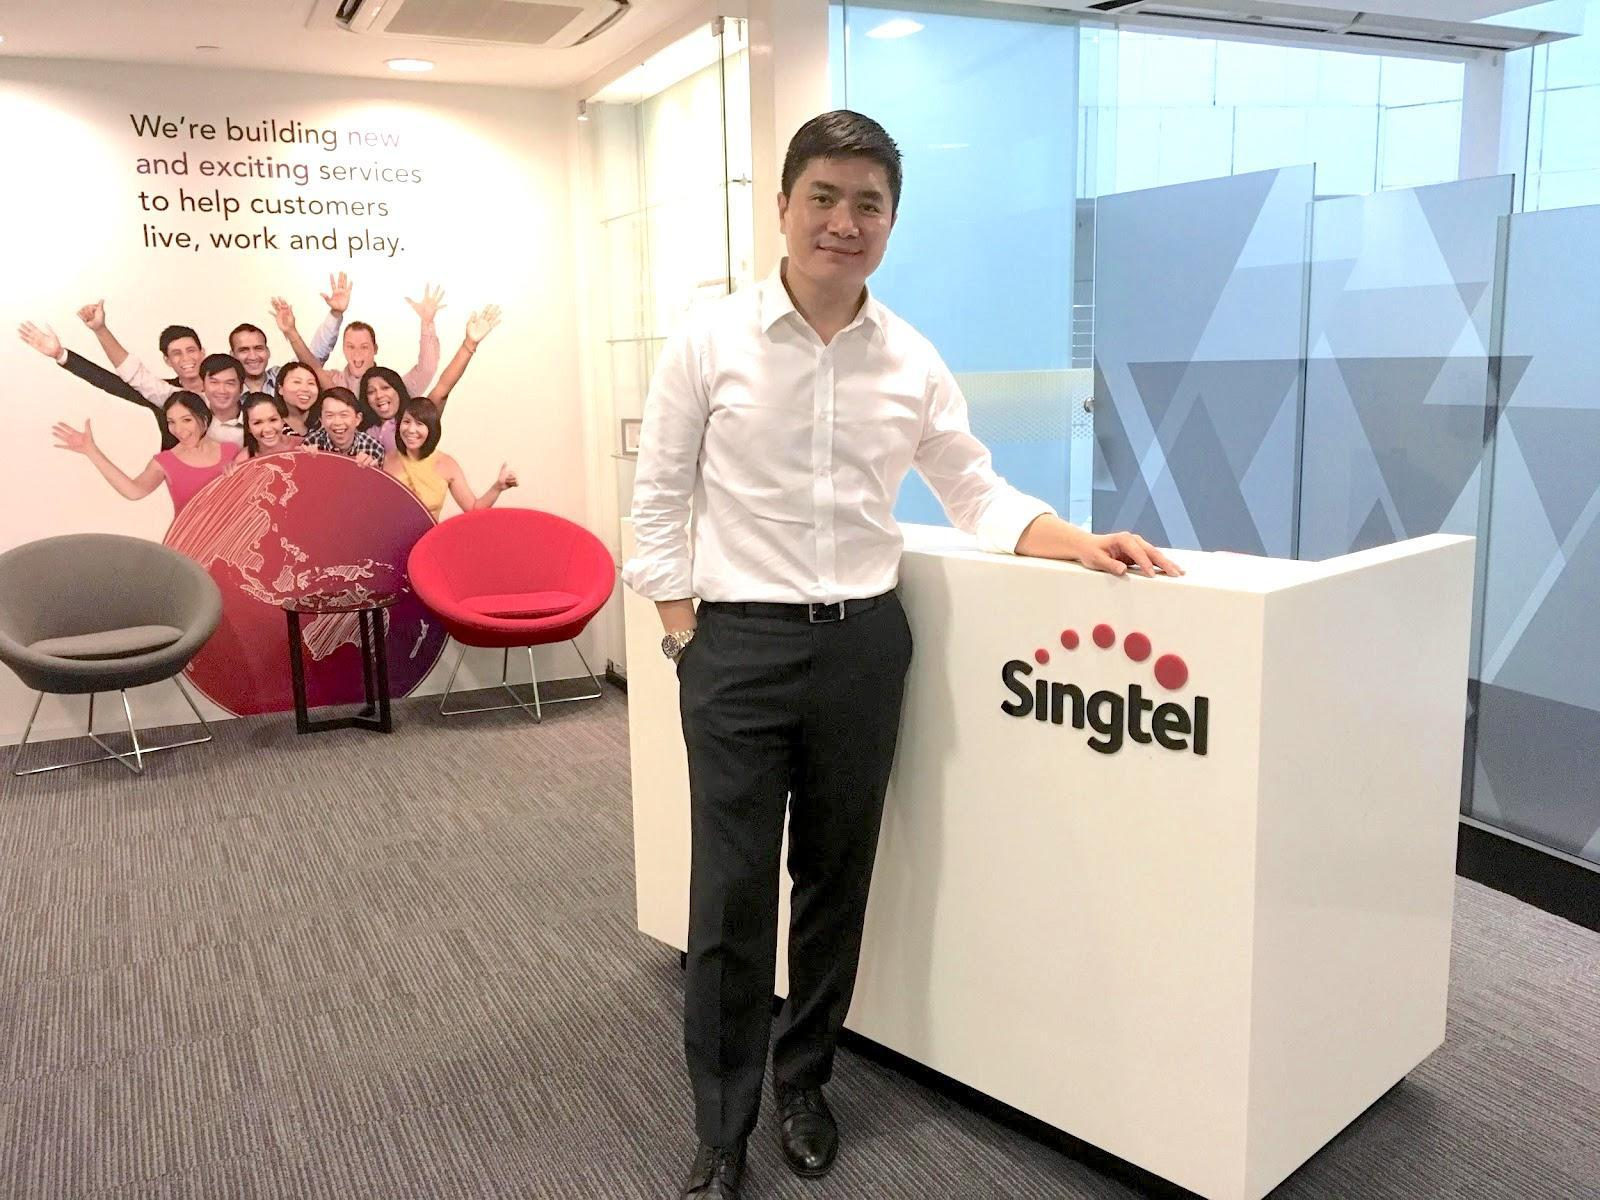 Charlton Ong, vice president of group human resources at Singtel